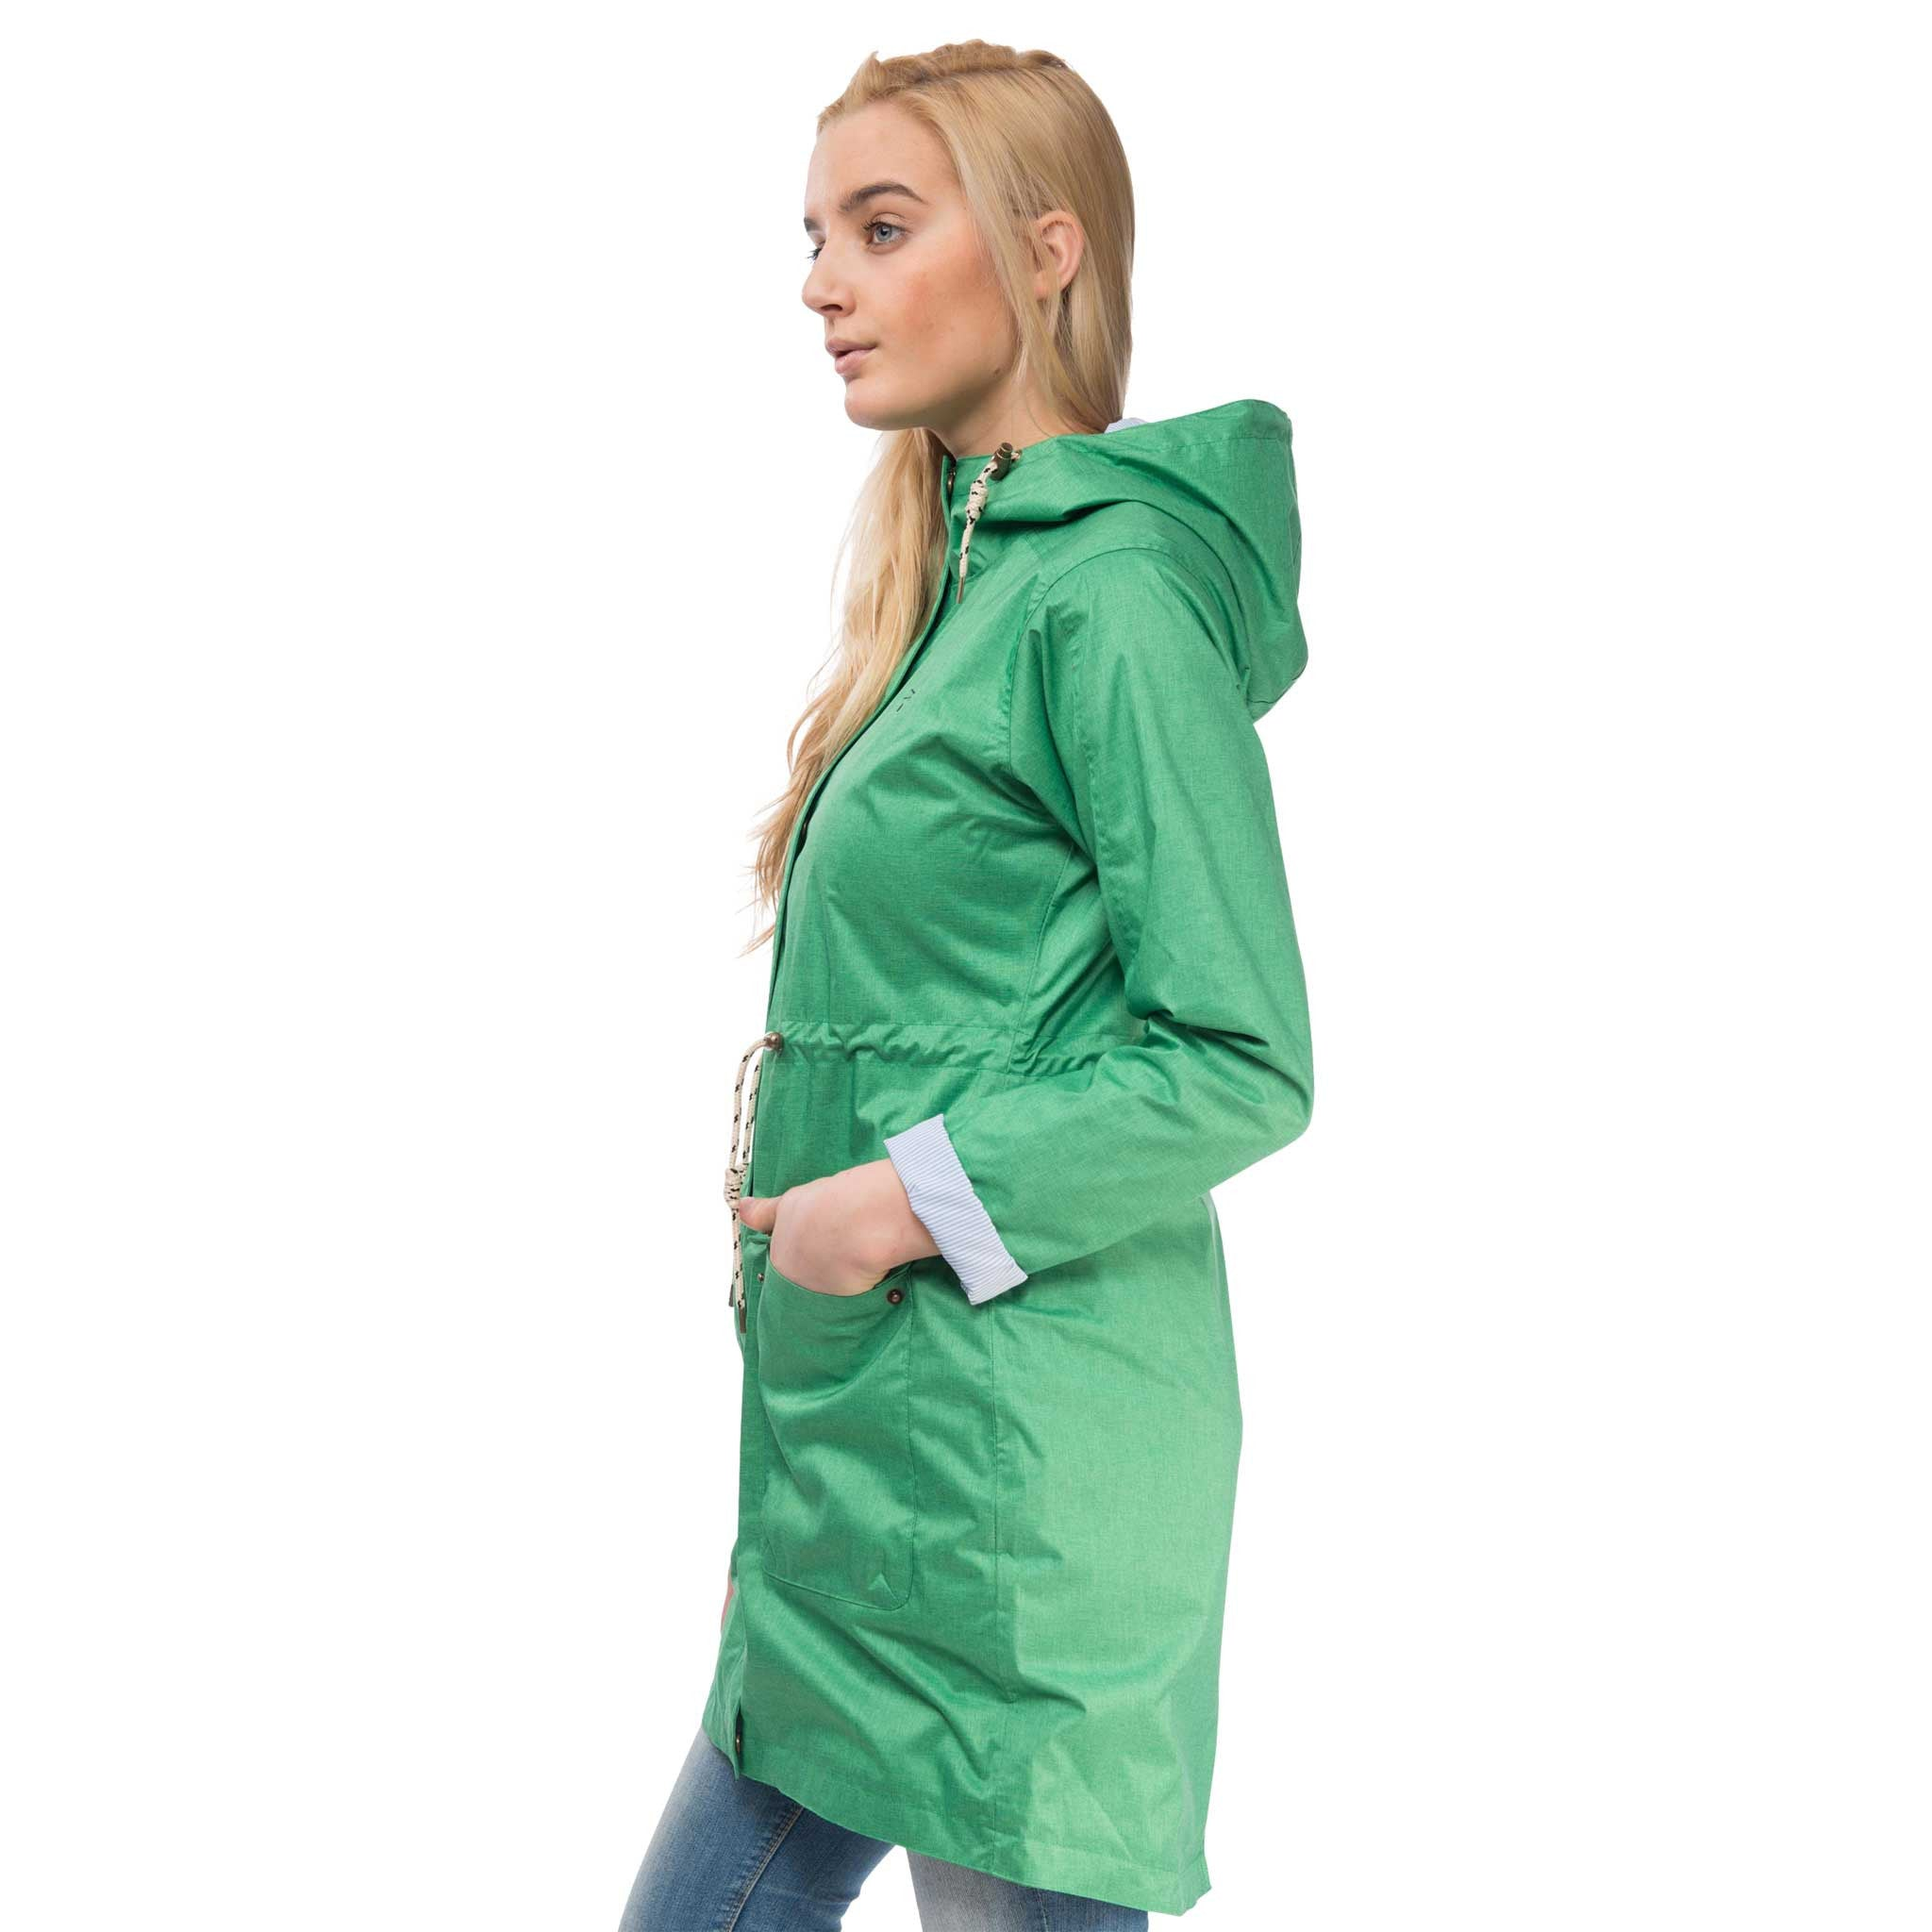 Fayda Womens Waterproof Parka in Seagrass Green, Modelled Side View | Lighthouse